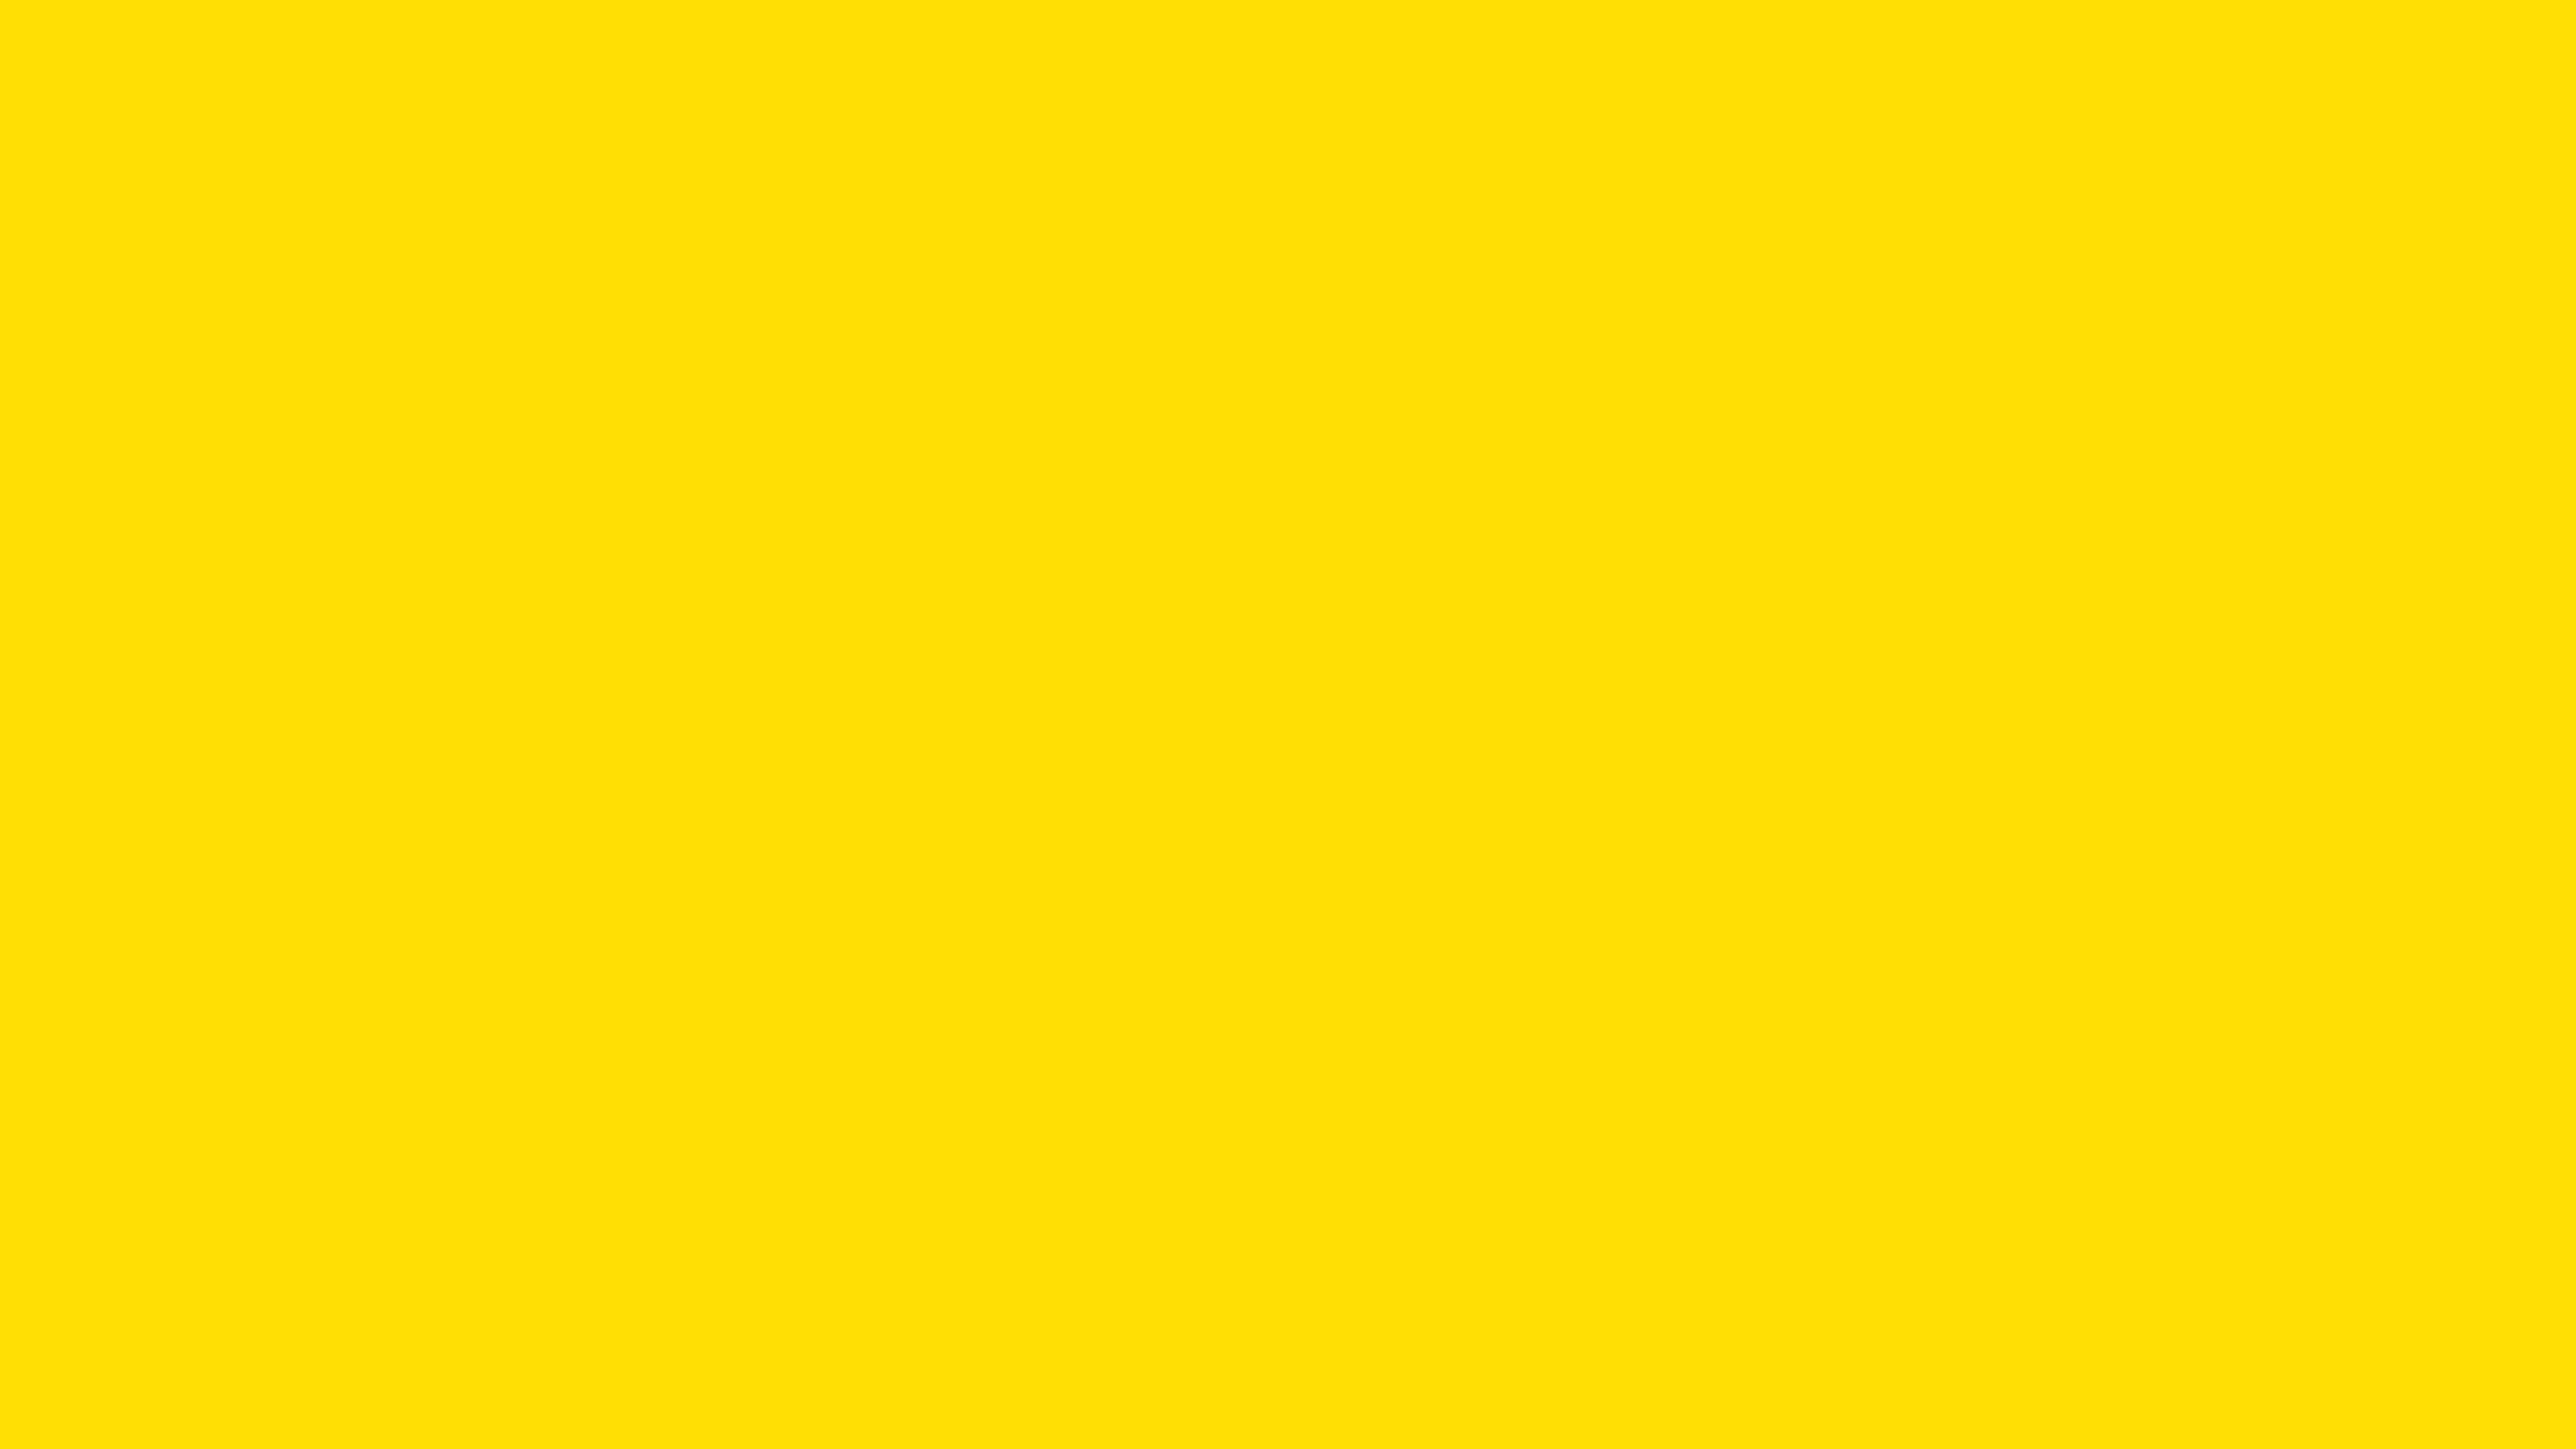 5120x2880 Yellow Pantone Solid Color Background